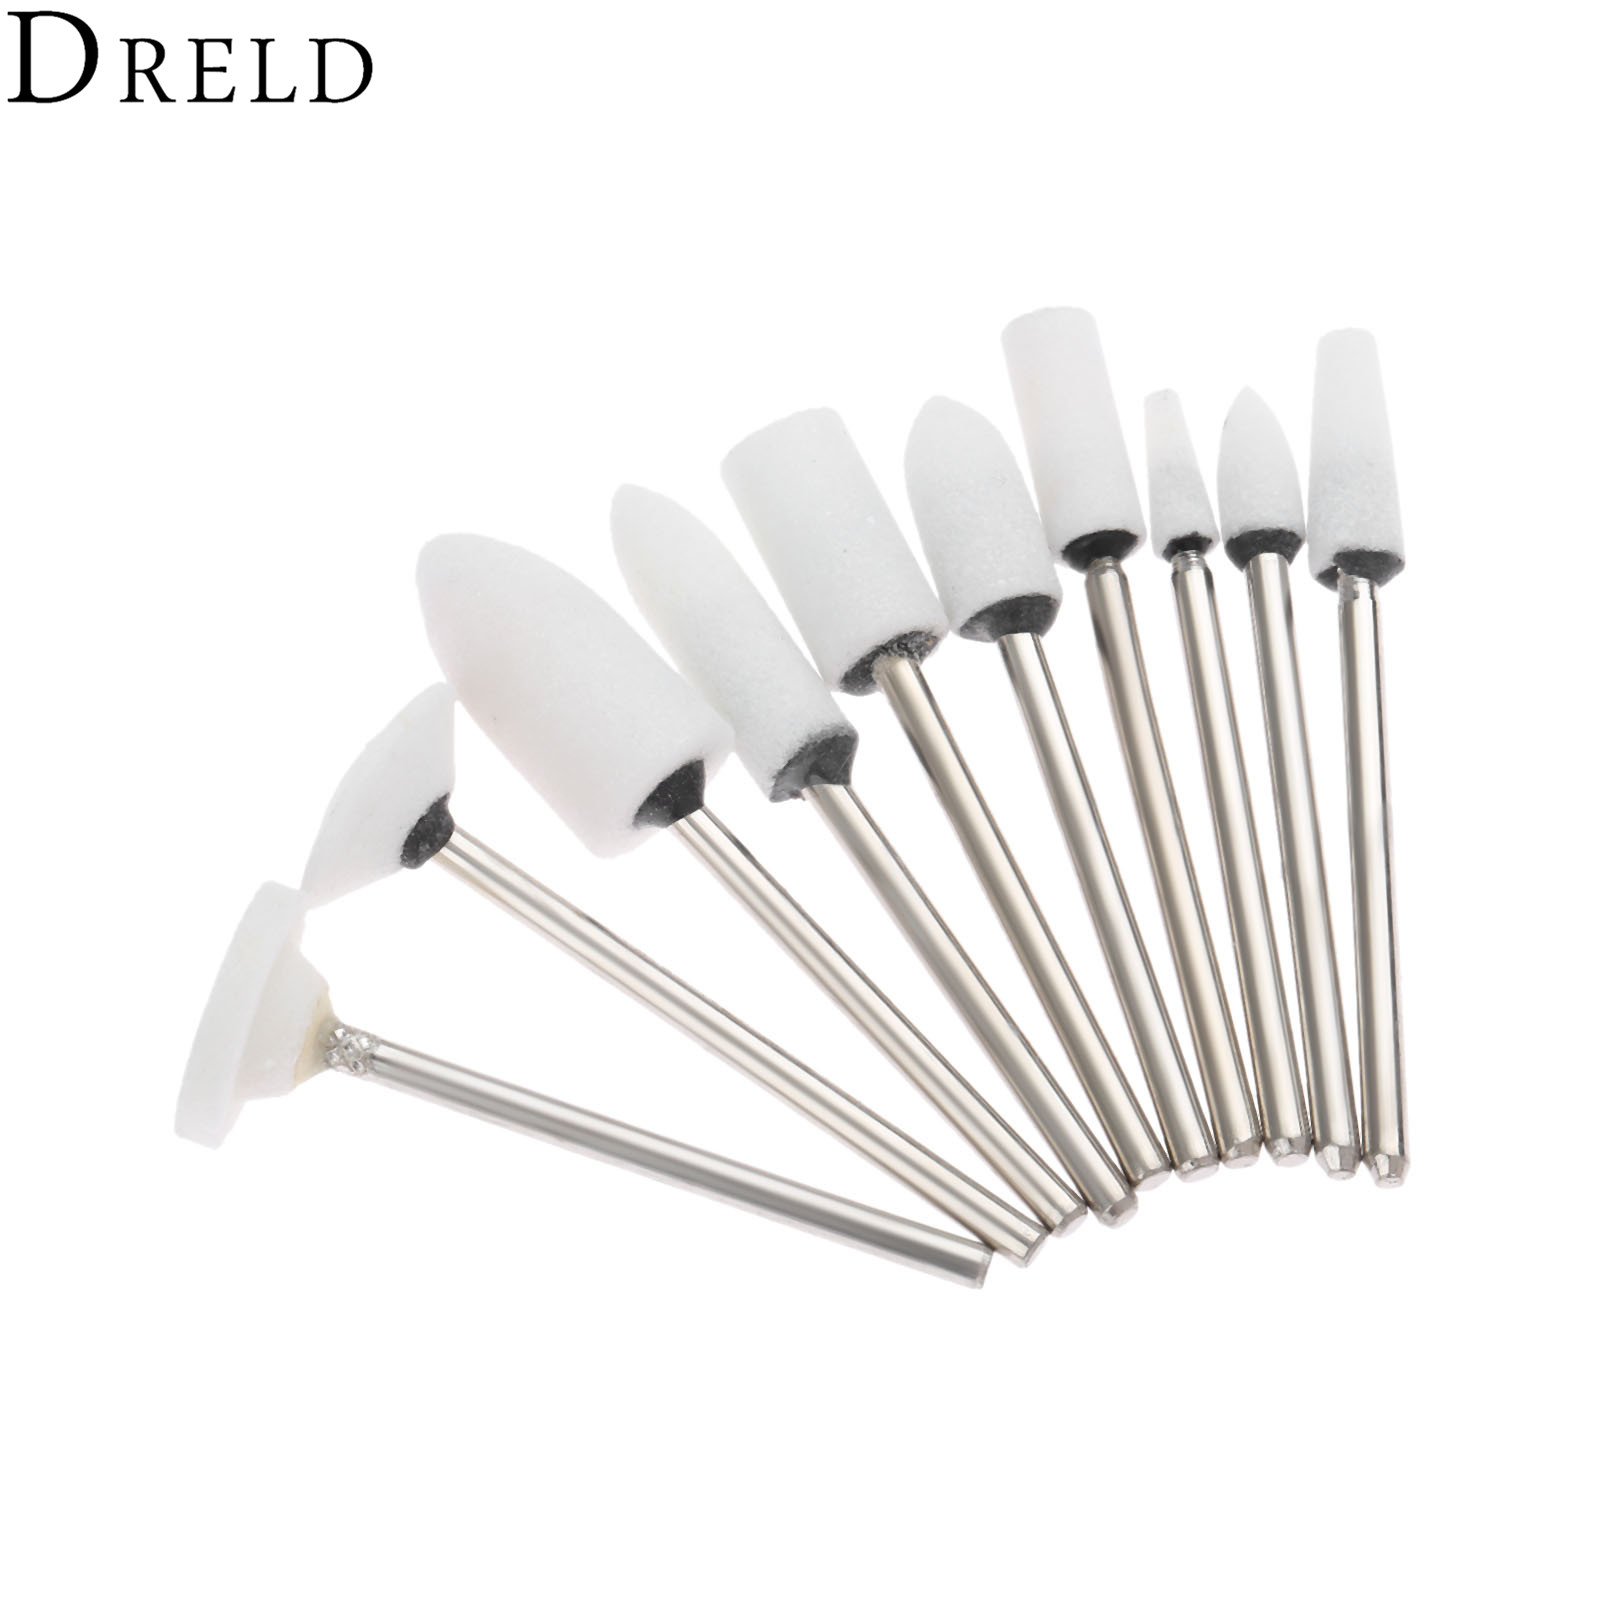 DRELD 10Pcs 2.35mm Shank White Buffing Polishing Grinding Head Dremel Accessories For Mould Finish Polish Grinder Rotary Tools